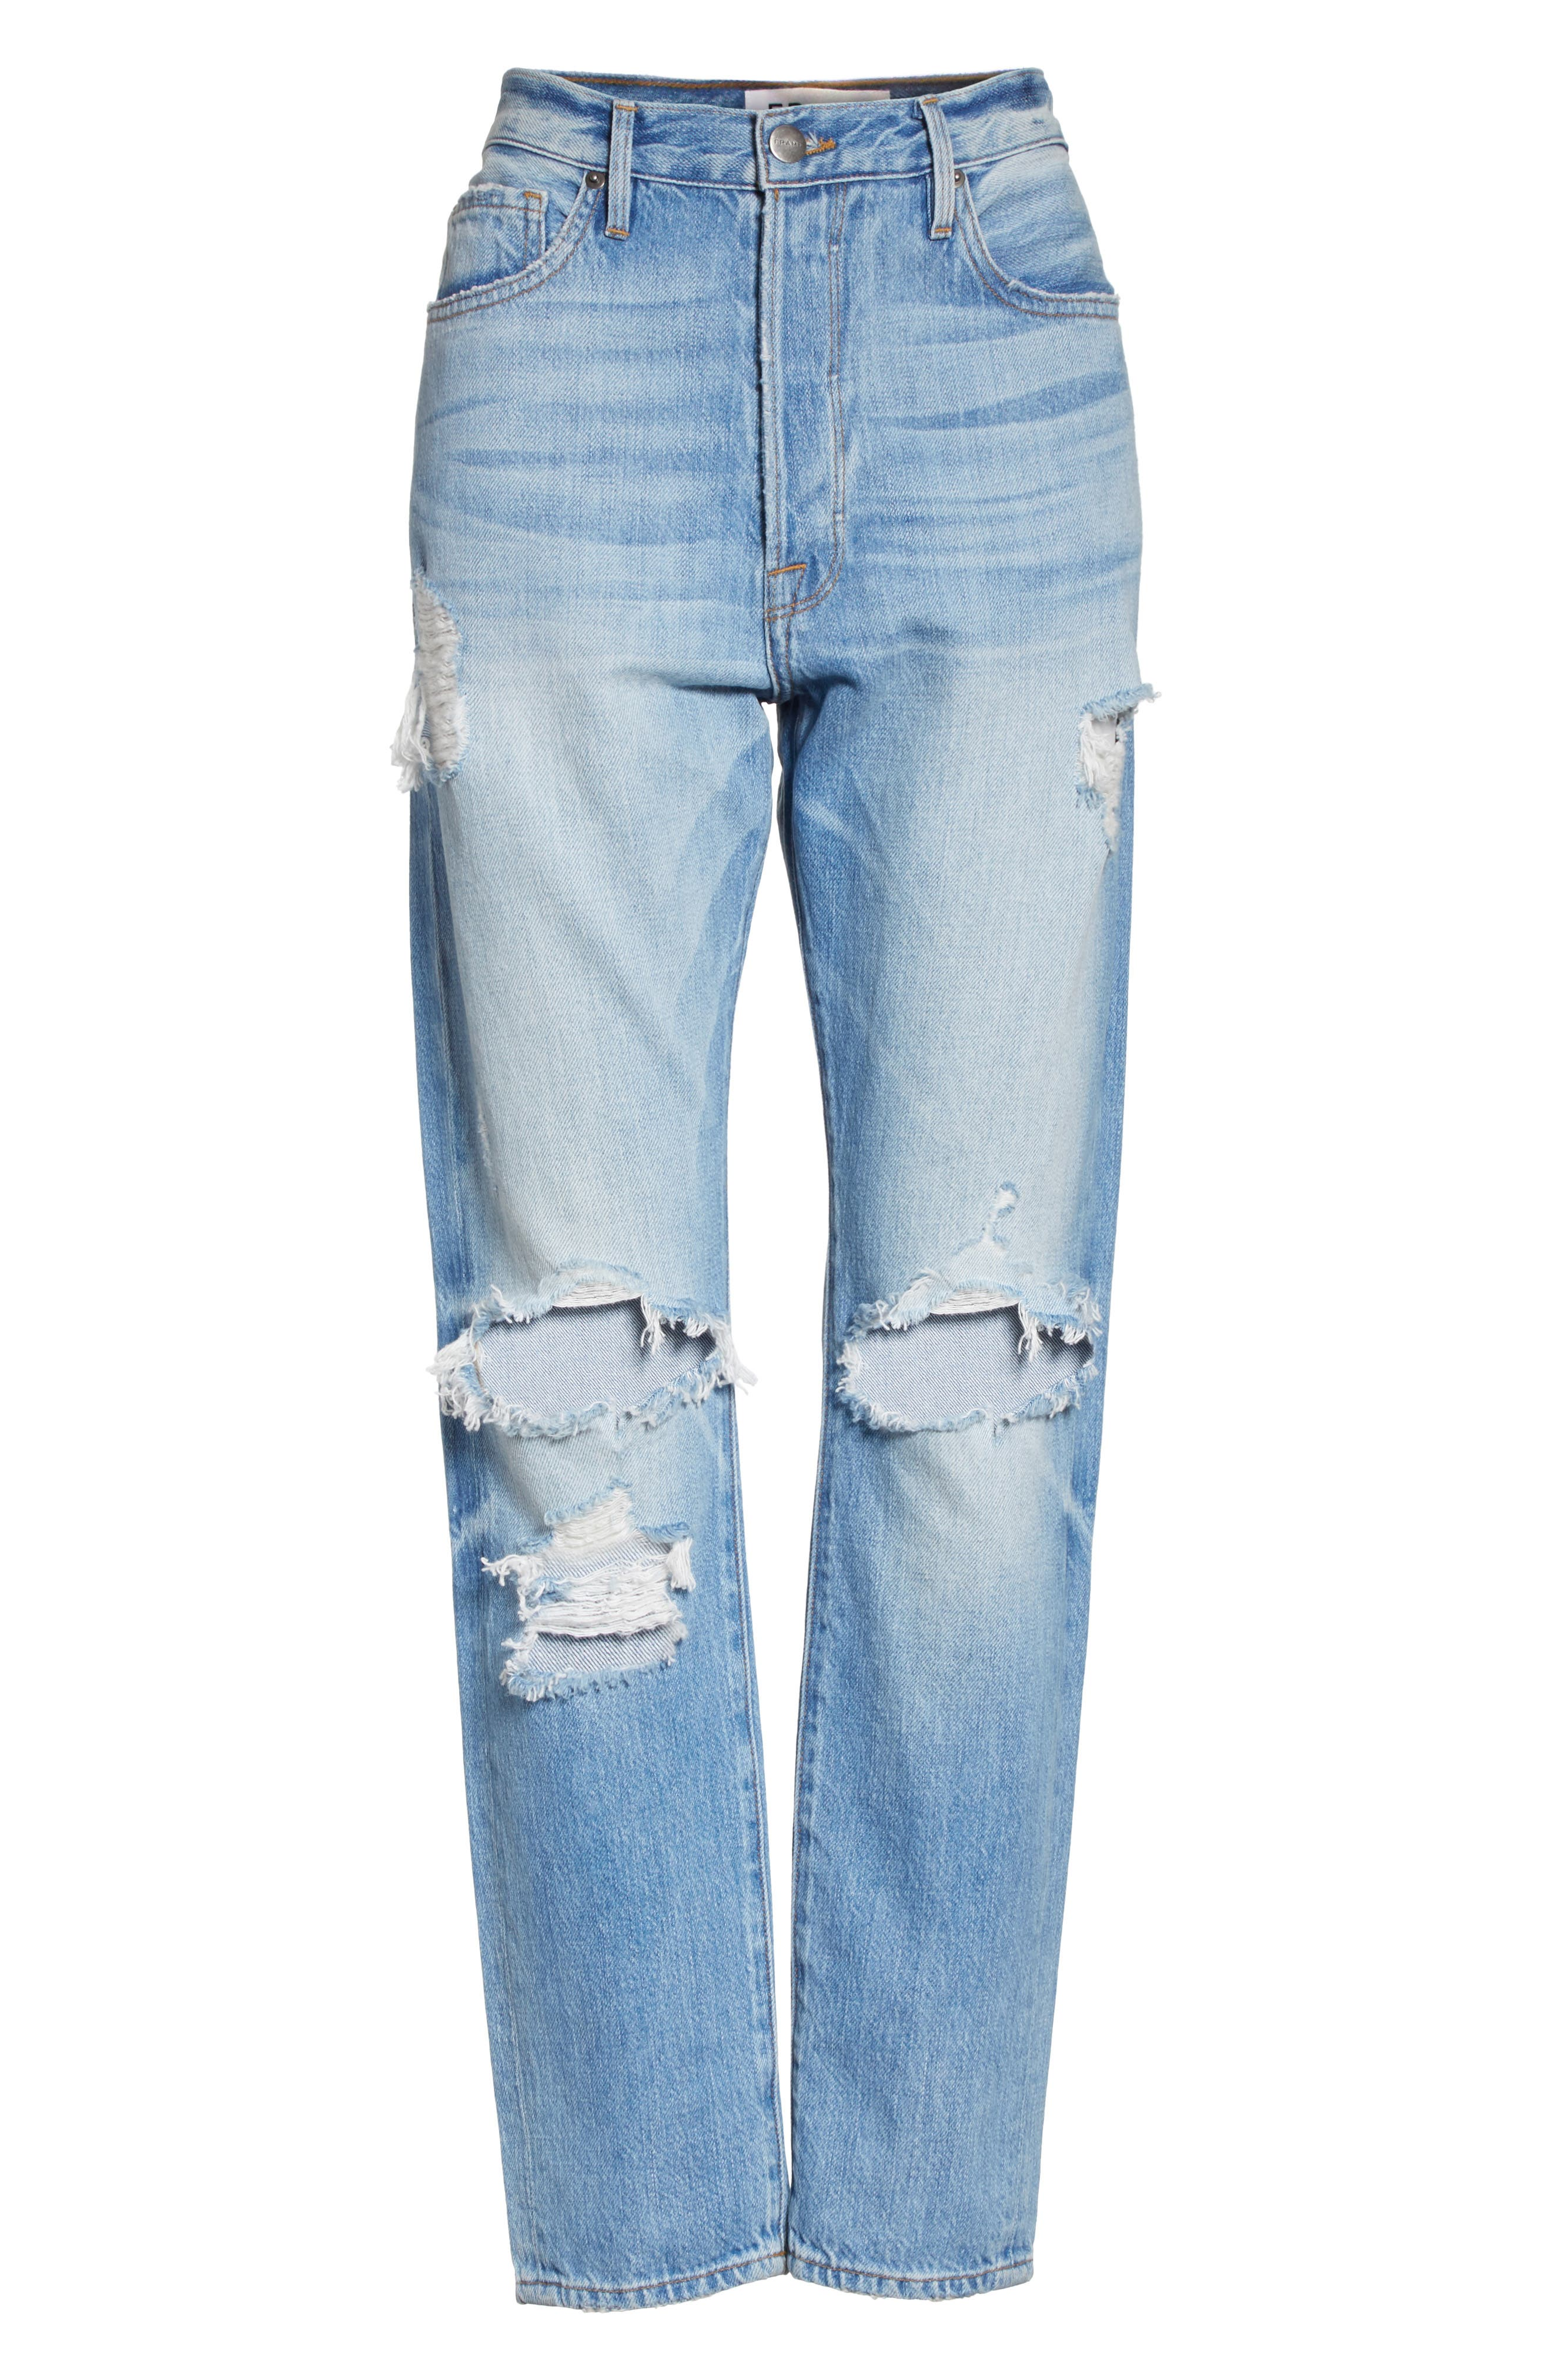 Le Original Ripped High Waist Skinny Jeans,                             Alternate thumbnail 7, color,                             POMDALE